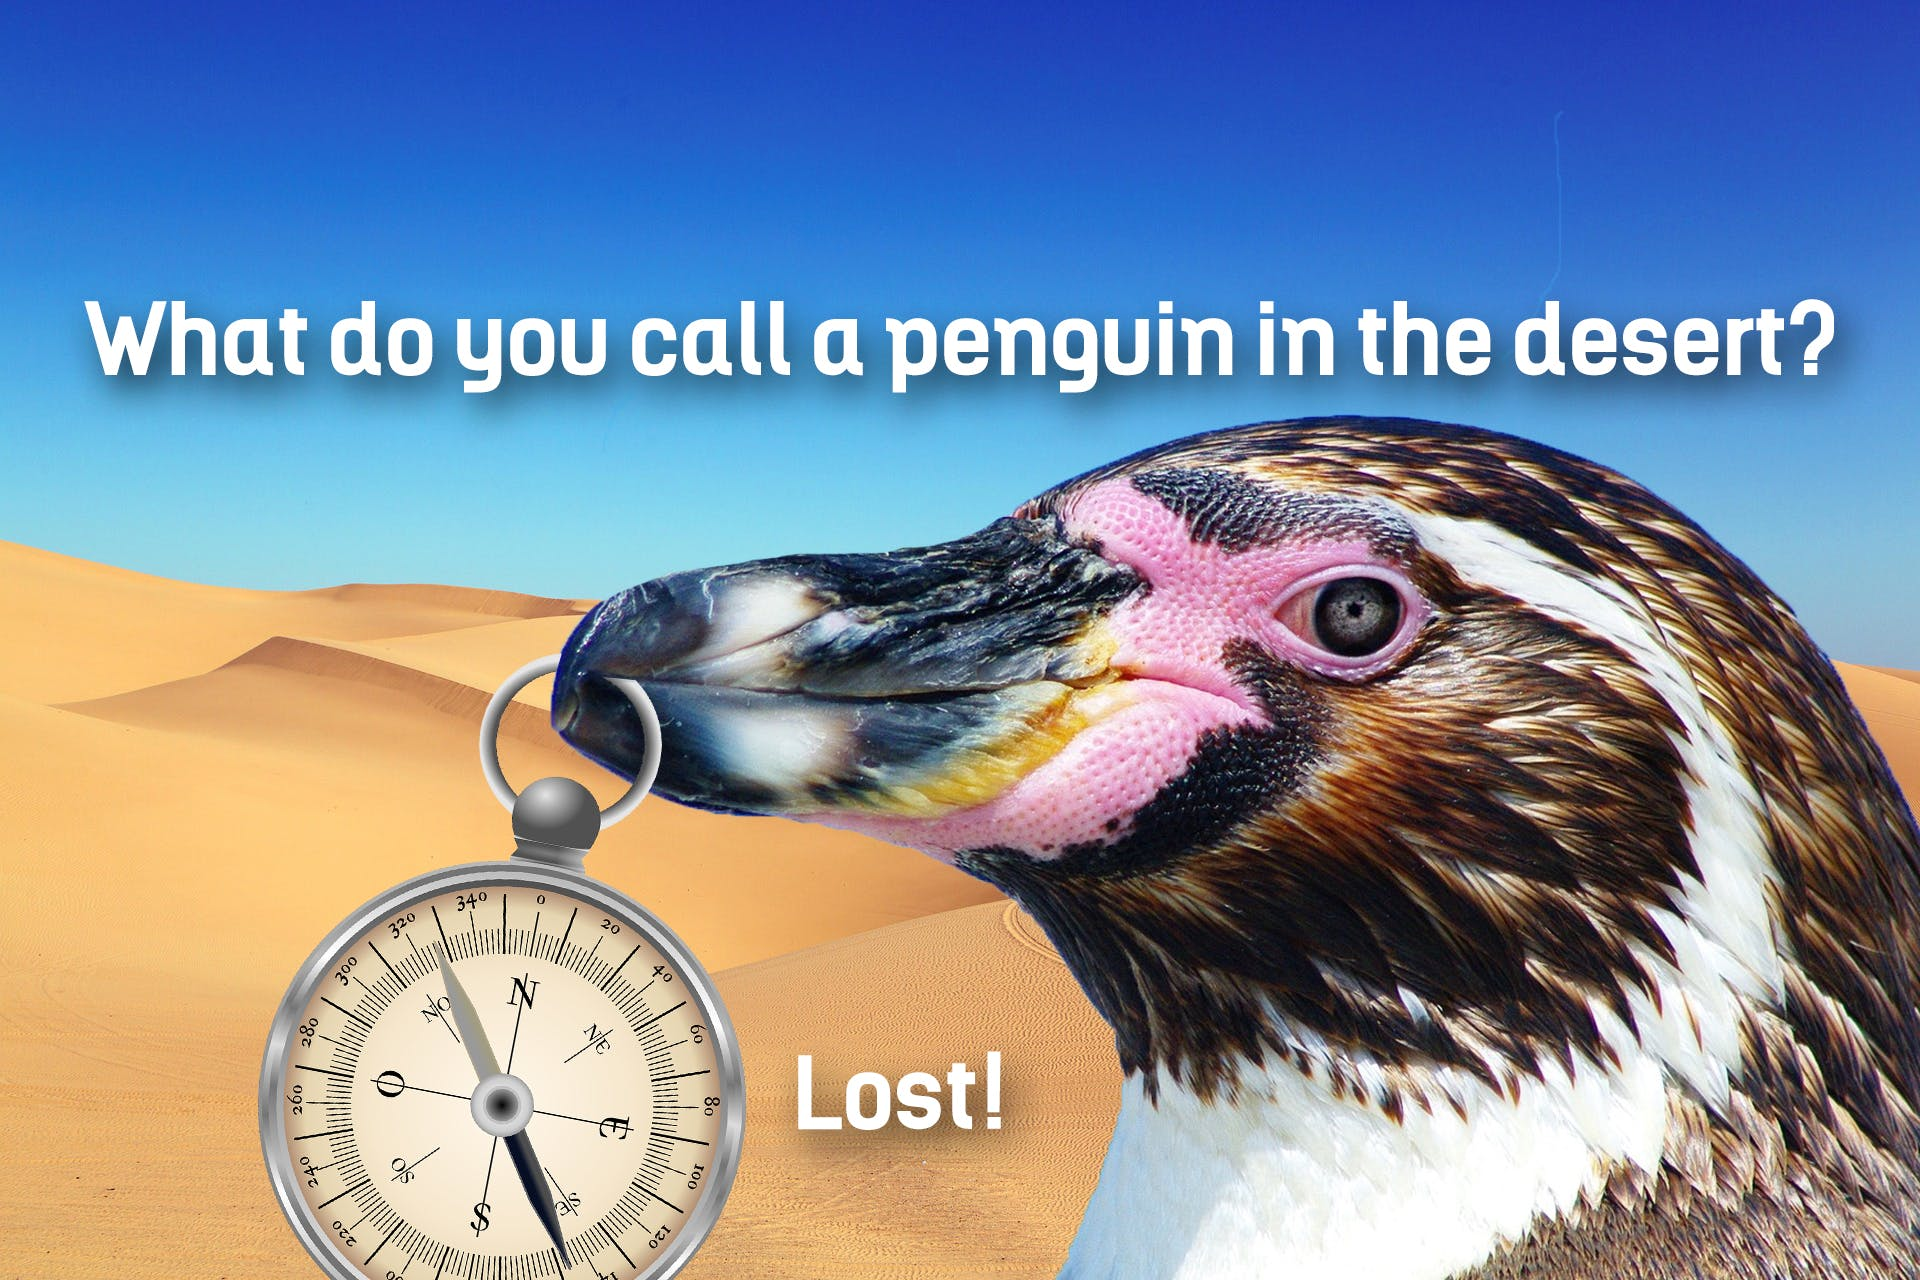 This is a joke about a penguin in an unusual situation